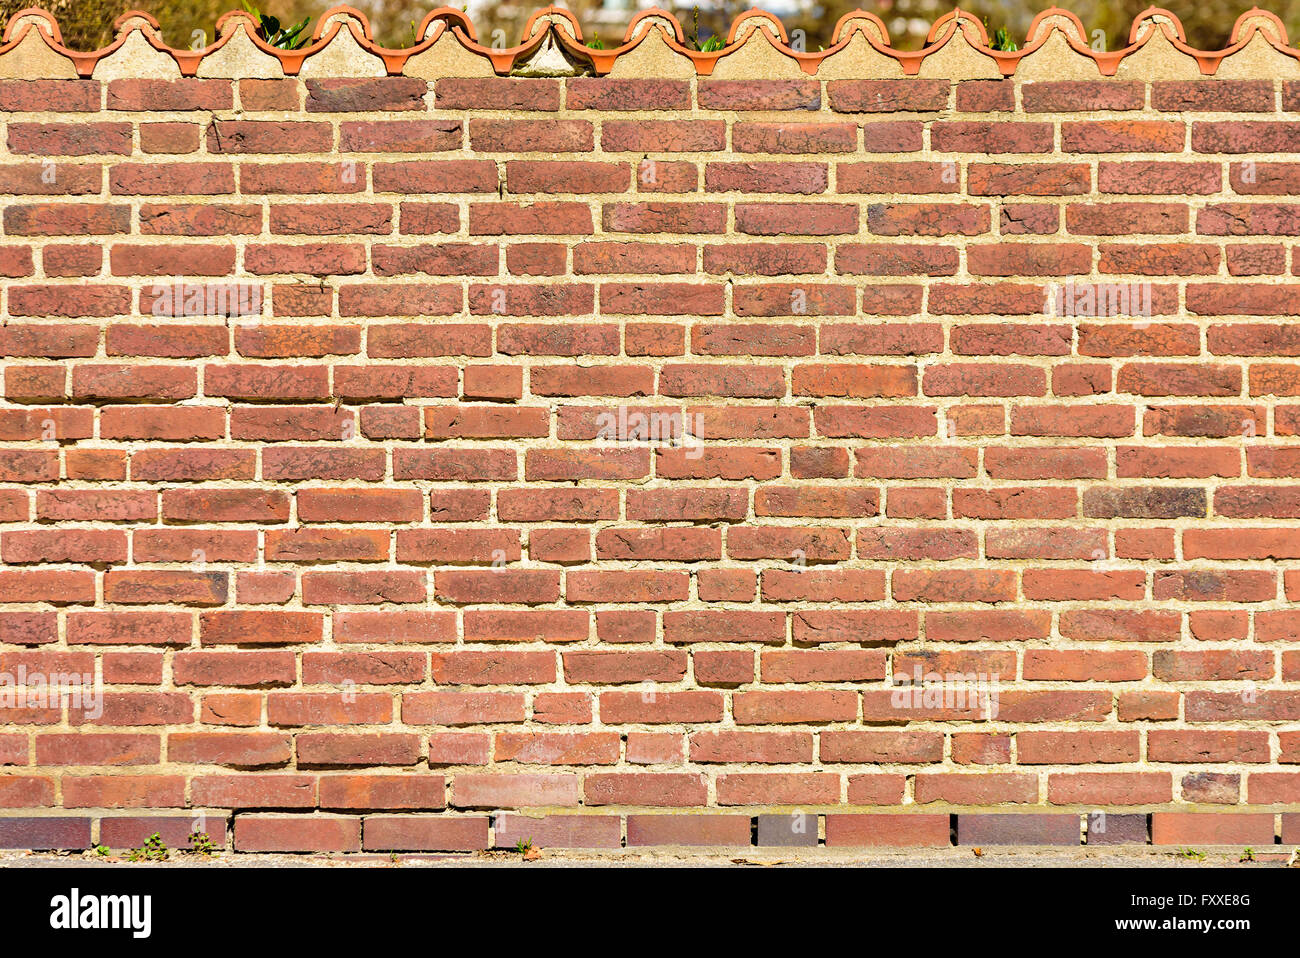 how to build a roof off a brick wall